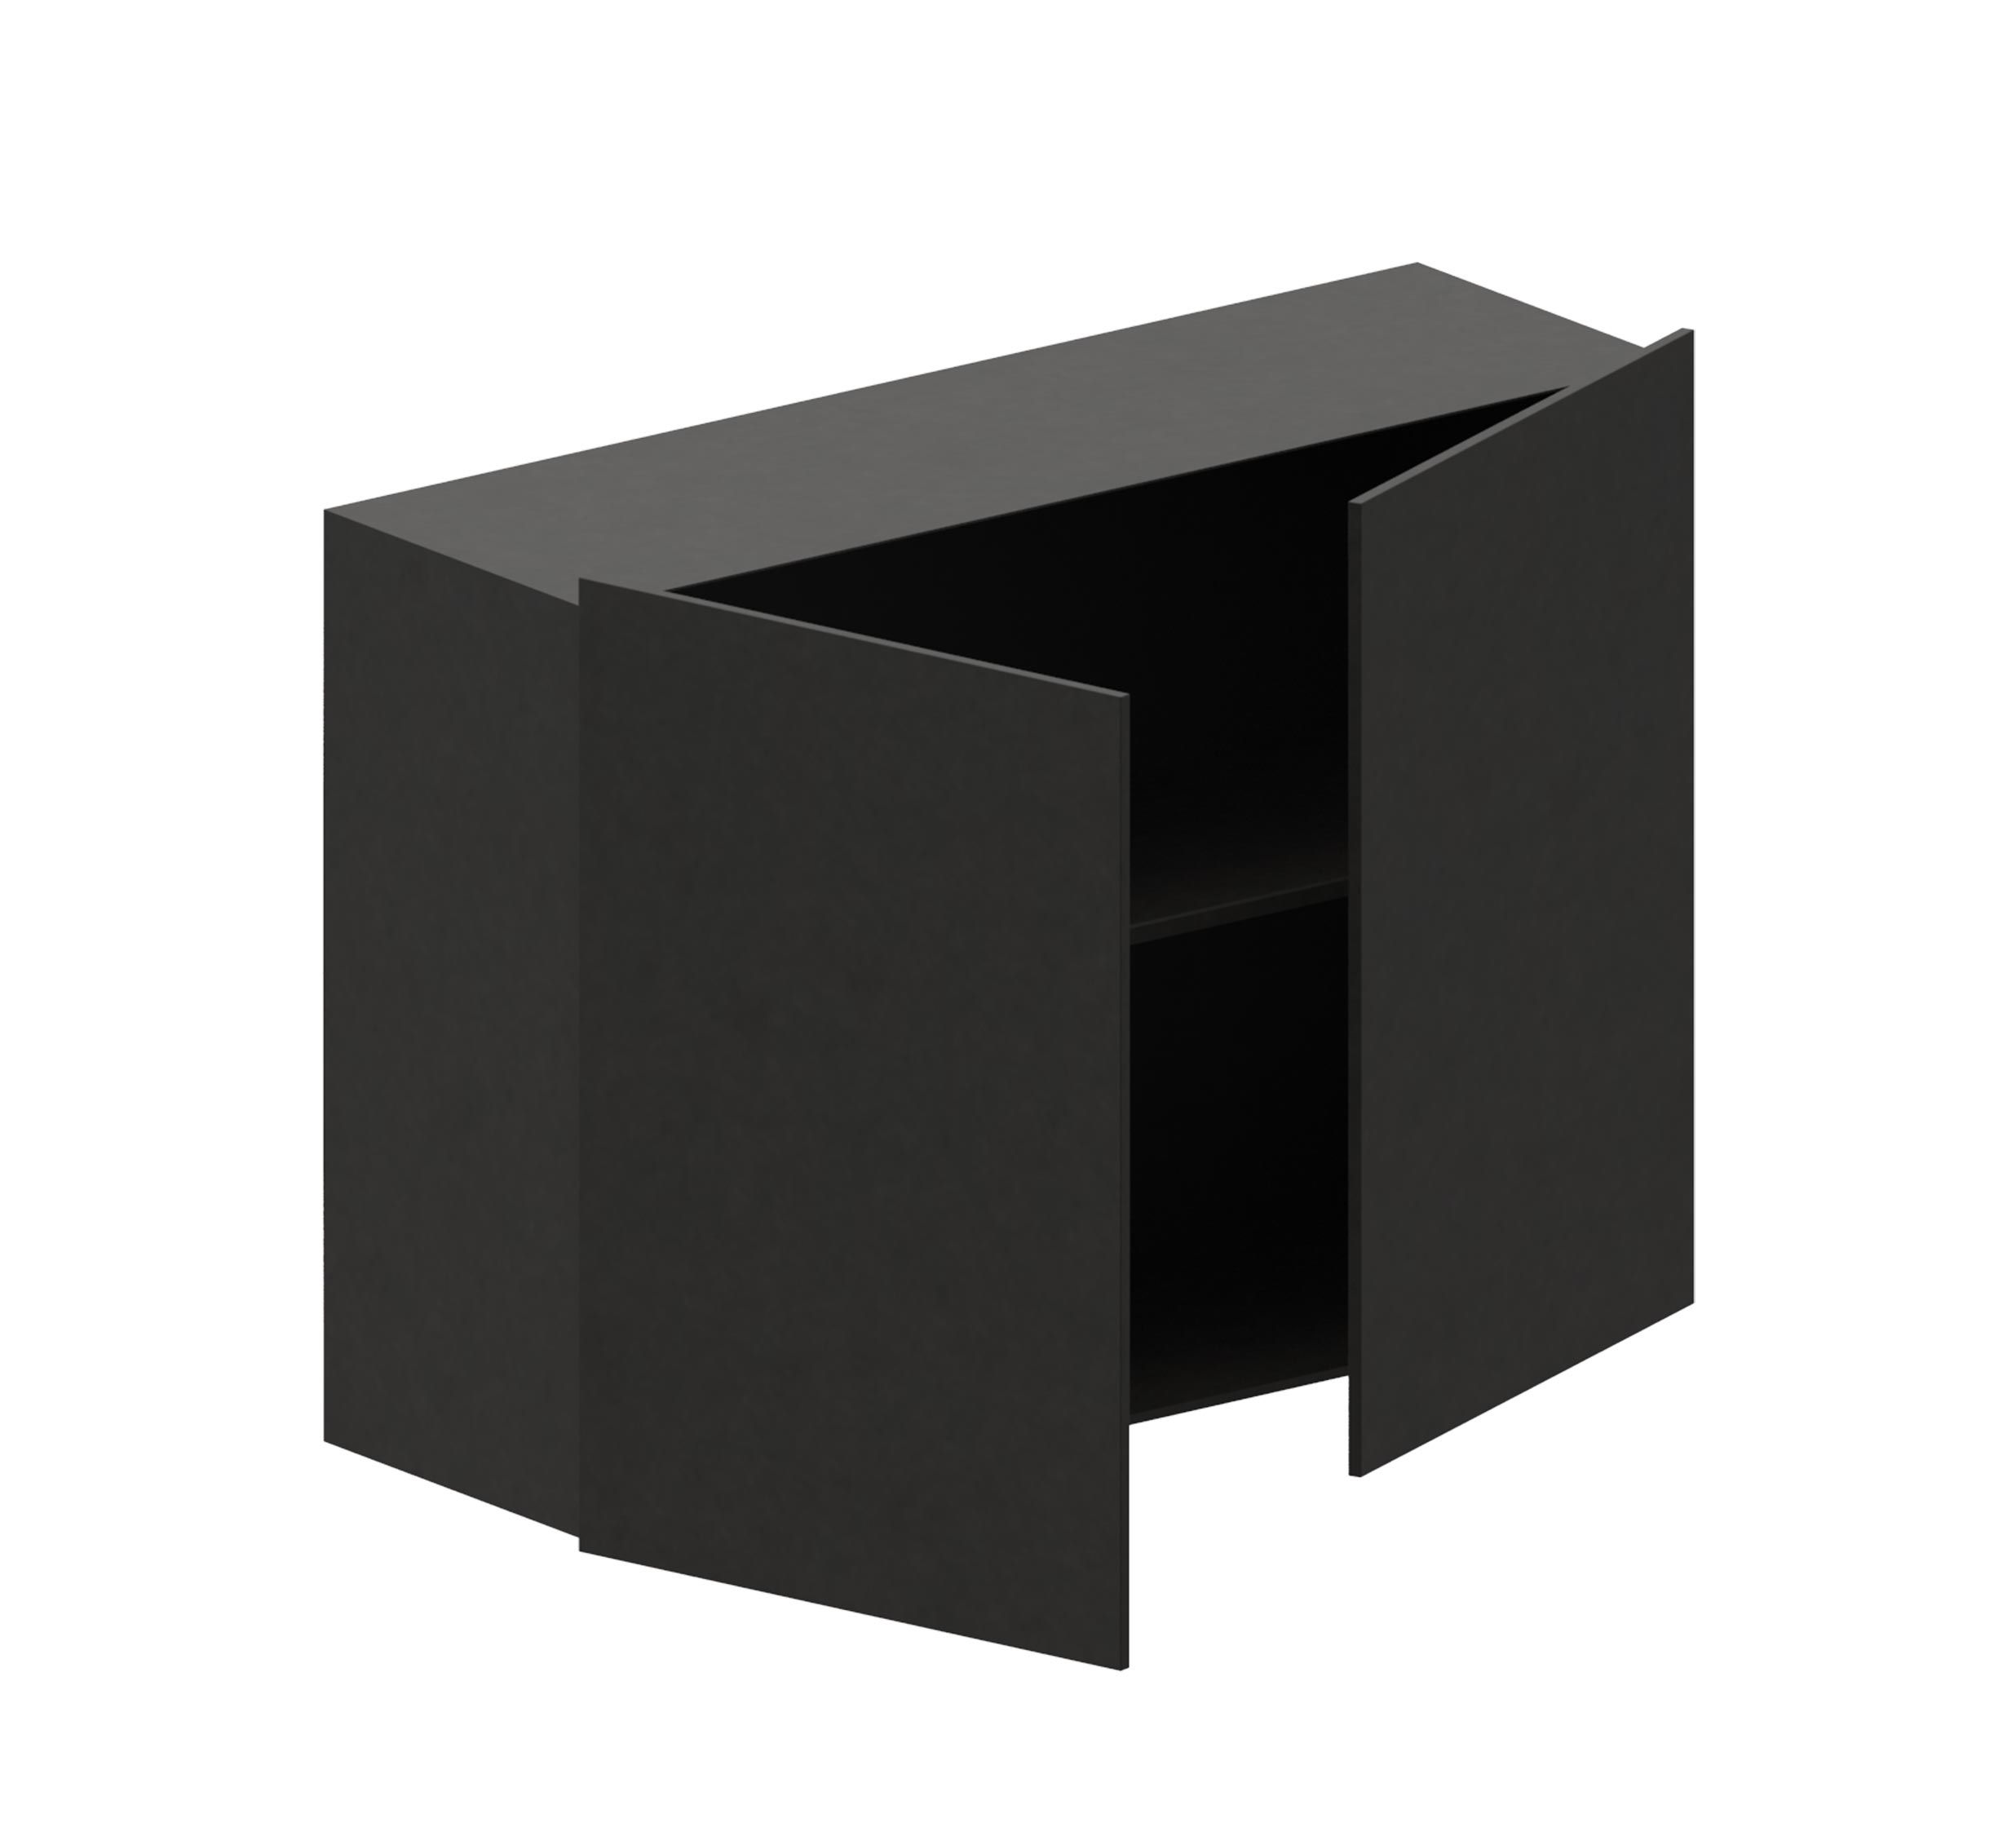 Furniture - Bookcases & Bookshelves - Crate - Push-pull / For Easy Irony bookcase - L 100 cm by Zeus - Copper black - Painted steel